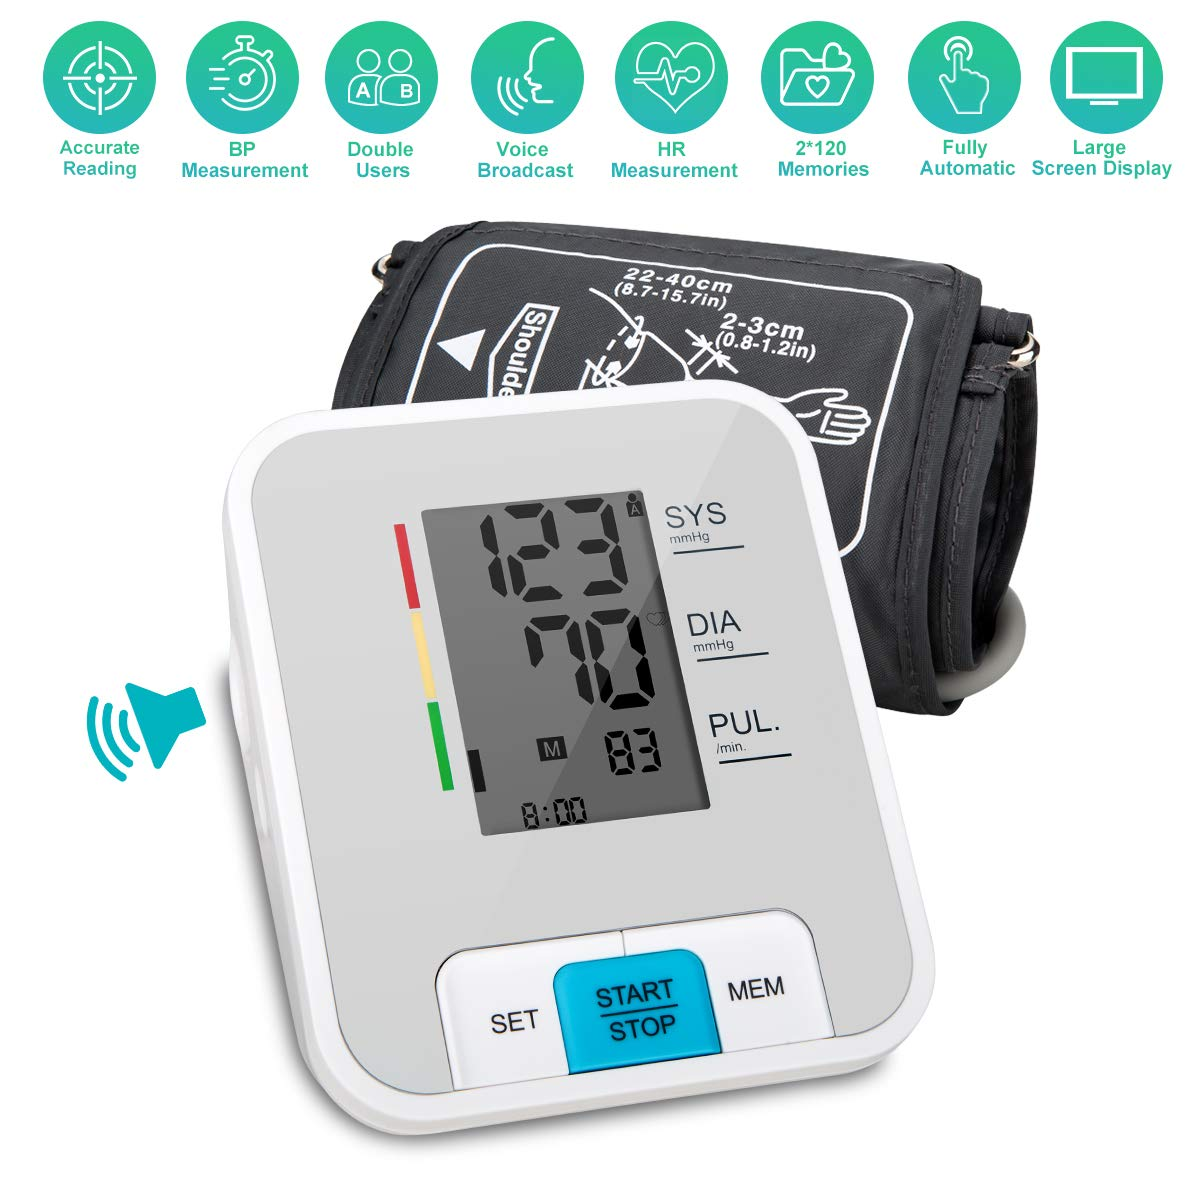 Blood Pressure Monitor, Upper Arm Blood Pressure Monitor with Wide-Range Cuff Digital Automatic Measure Blood Pressure and Heart Rate Pulse Large Screen and Voice Broadcast Powered by USB Or Battery